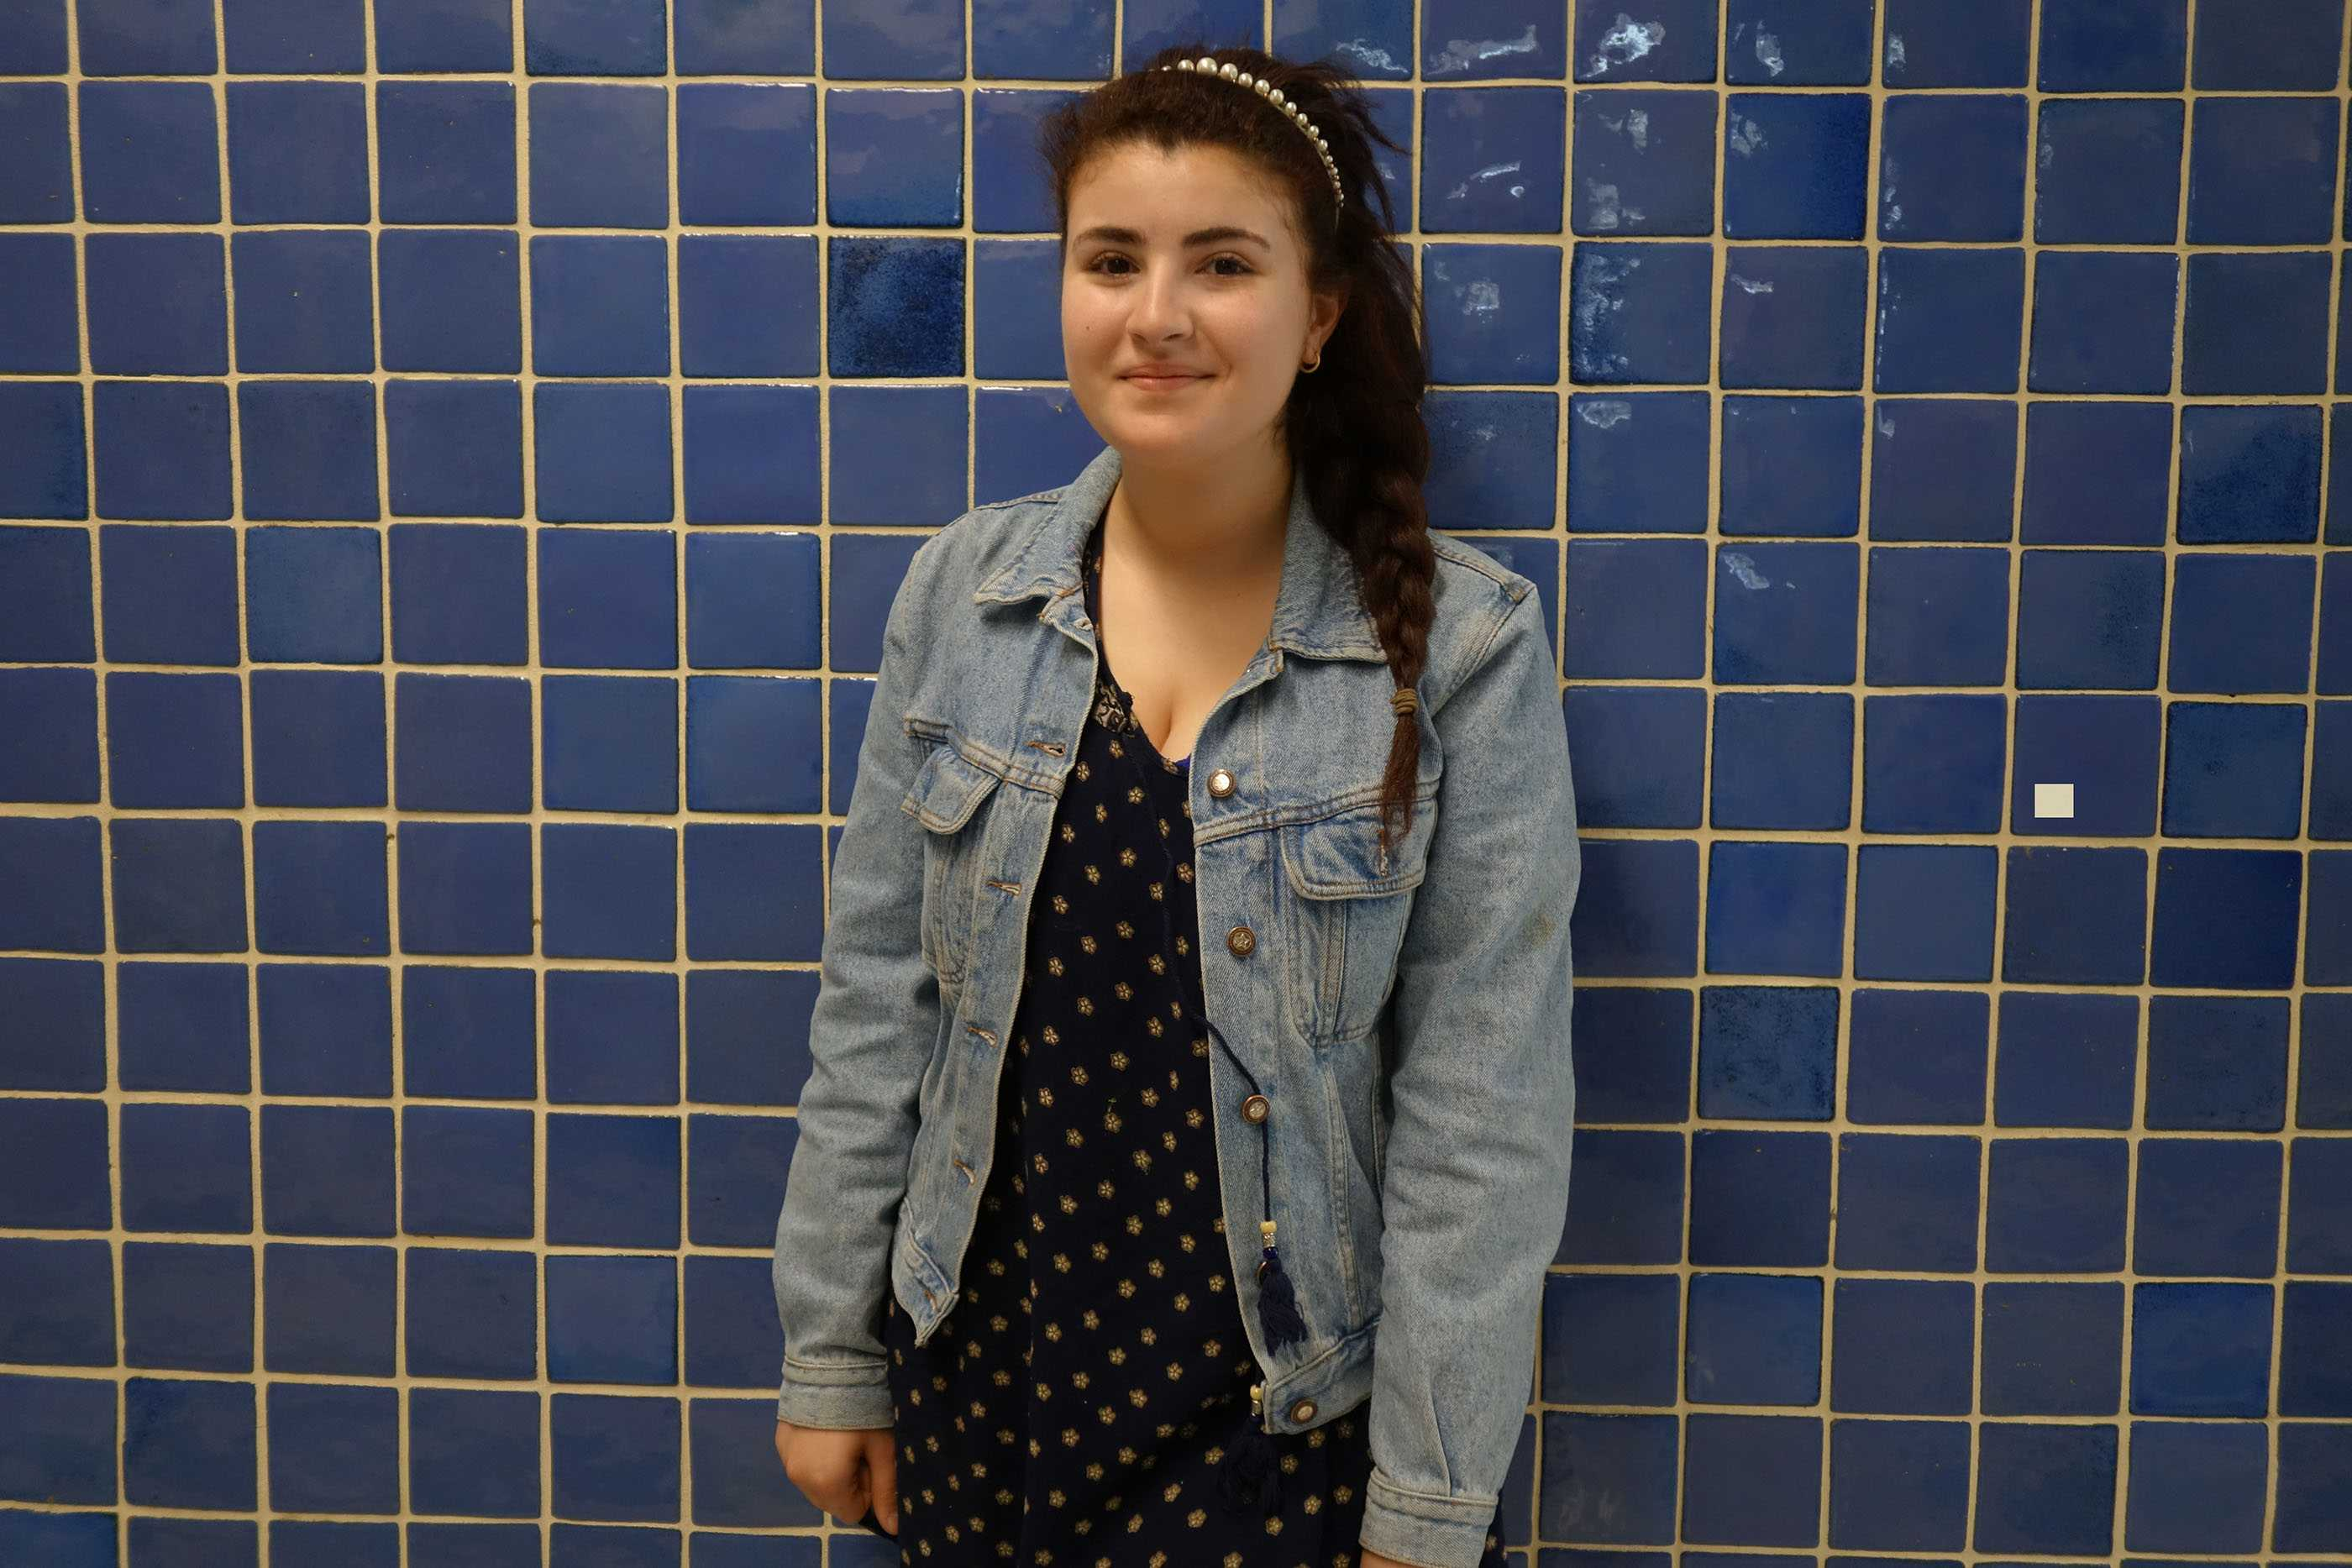 Junior Amber Blu makes sure to dress modestly at school. SUSANNA KEMP / SAGAMORE STAFF